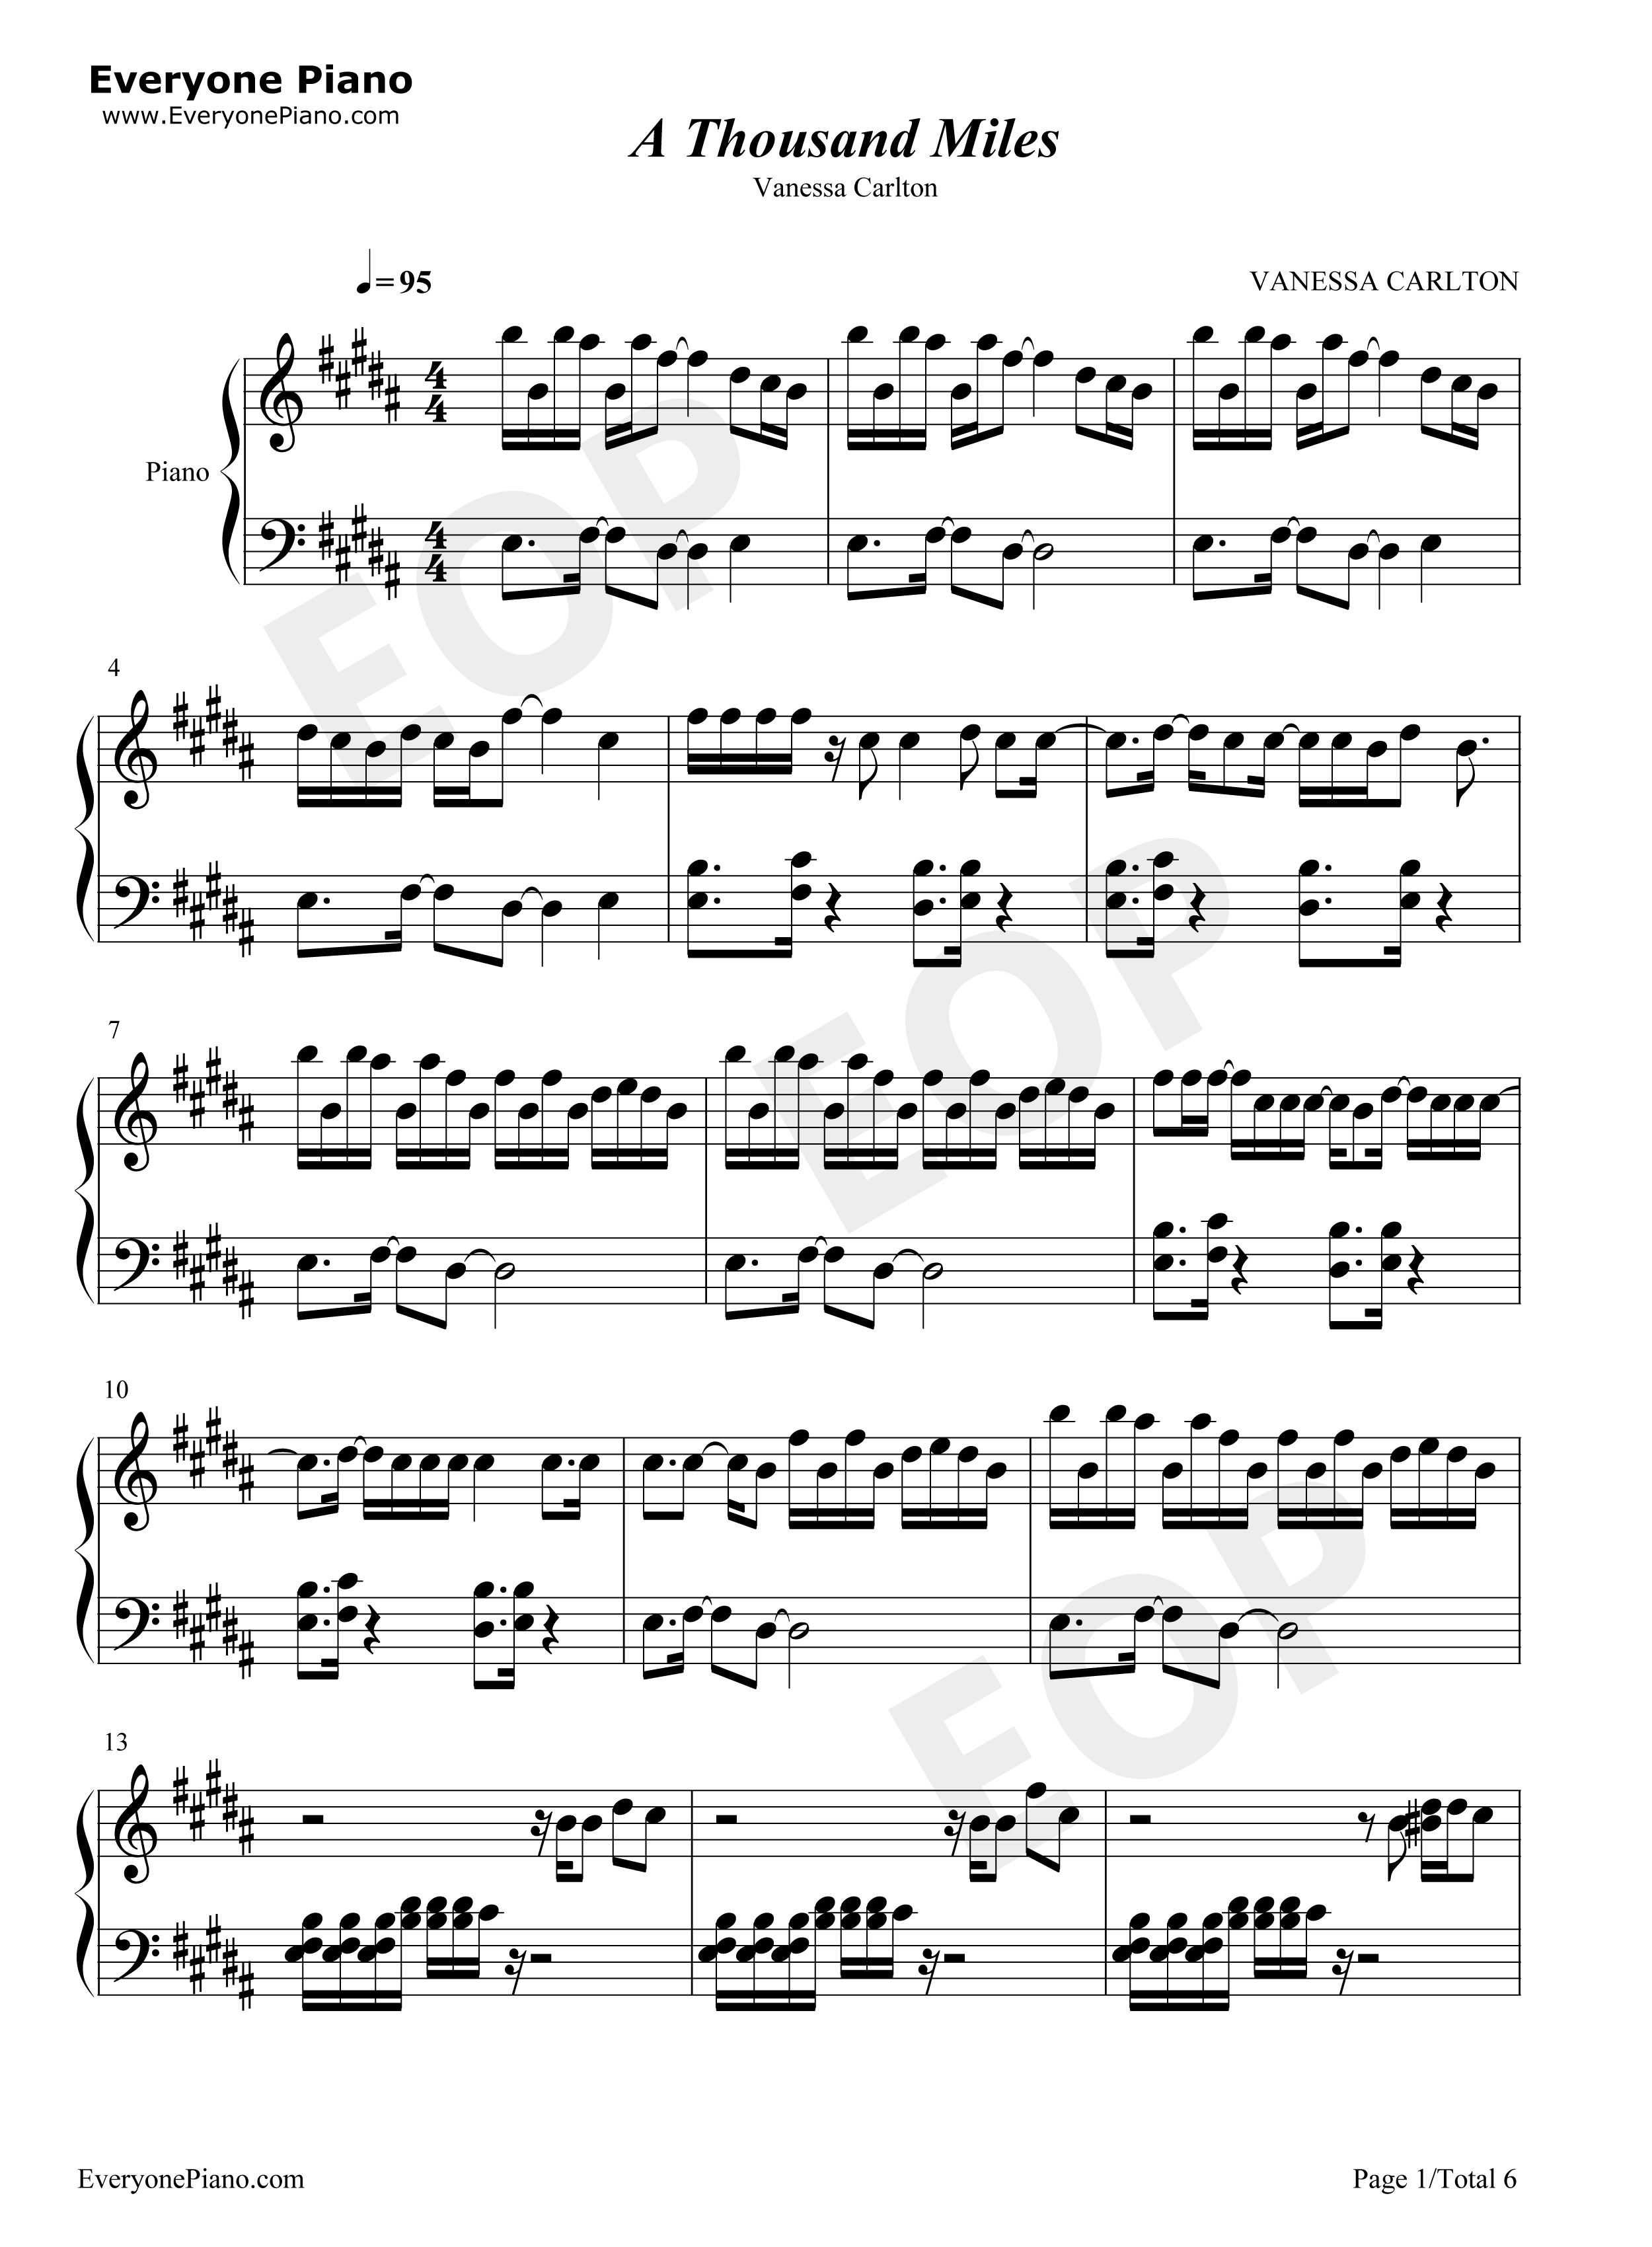 A Thousand Miles-Vanessa Carlton Stave Preview 1-Free Piano Sheet Music u0026 Piano Chords